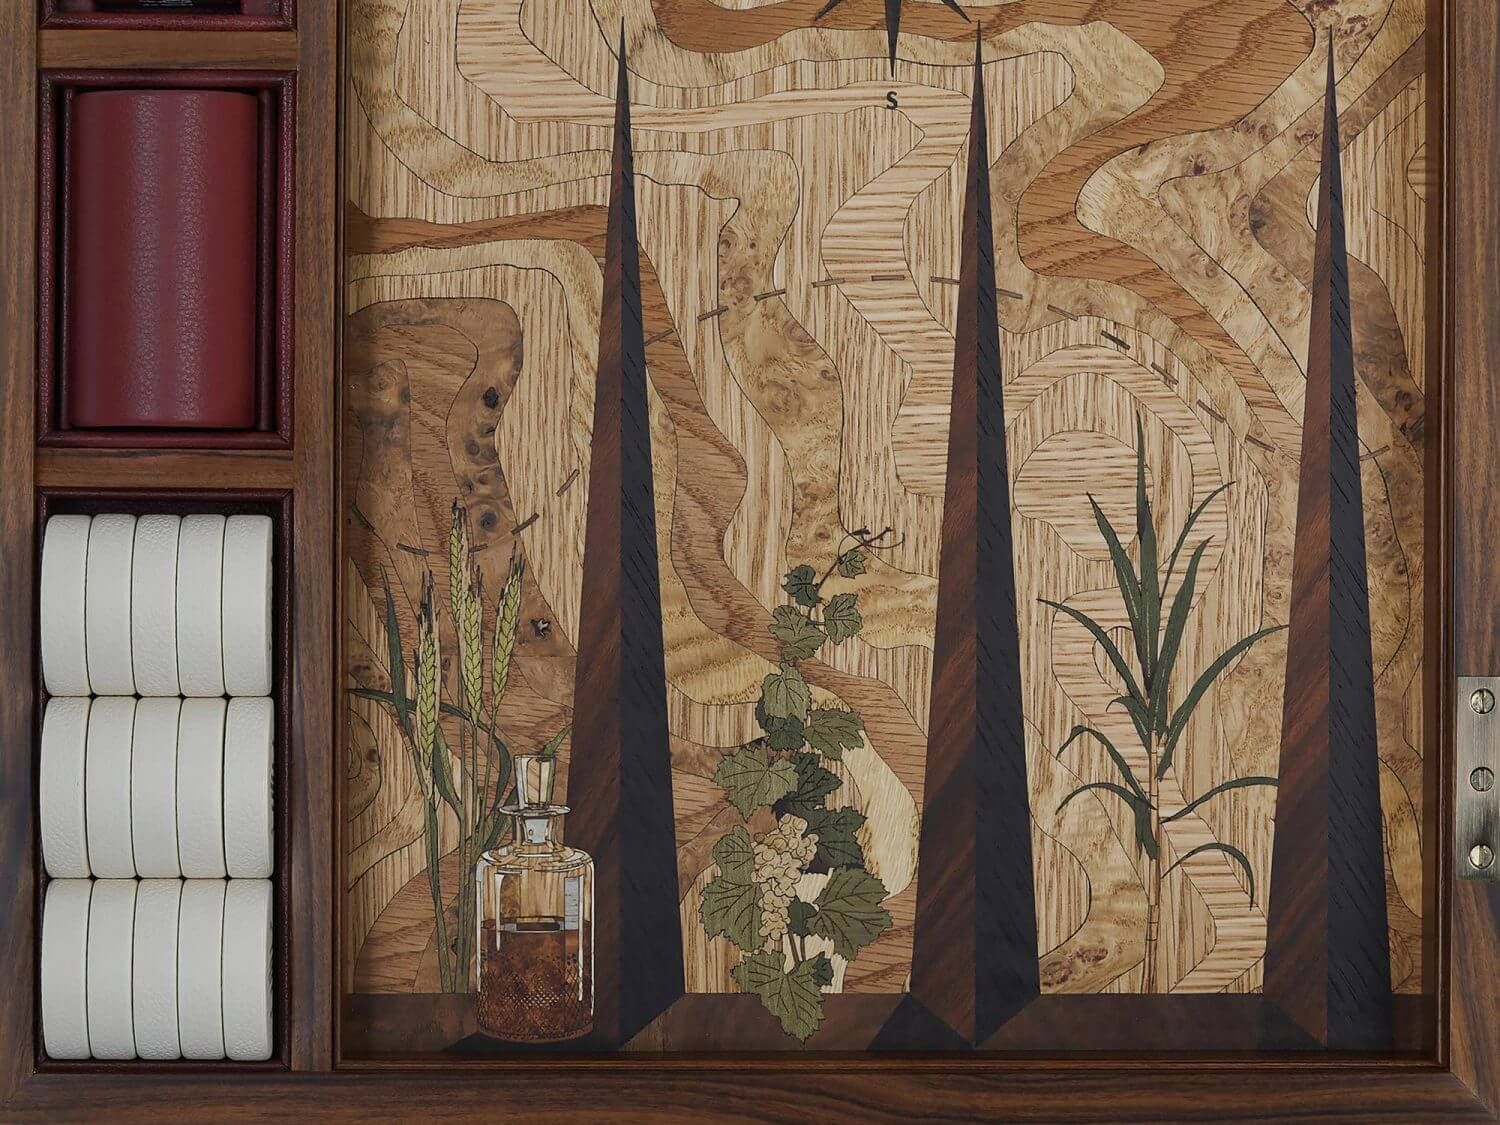 Marquetry backgammon board with whiskey bottle and exotic plant design